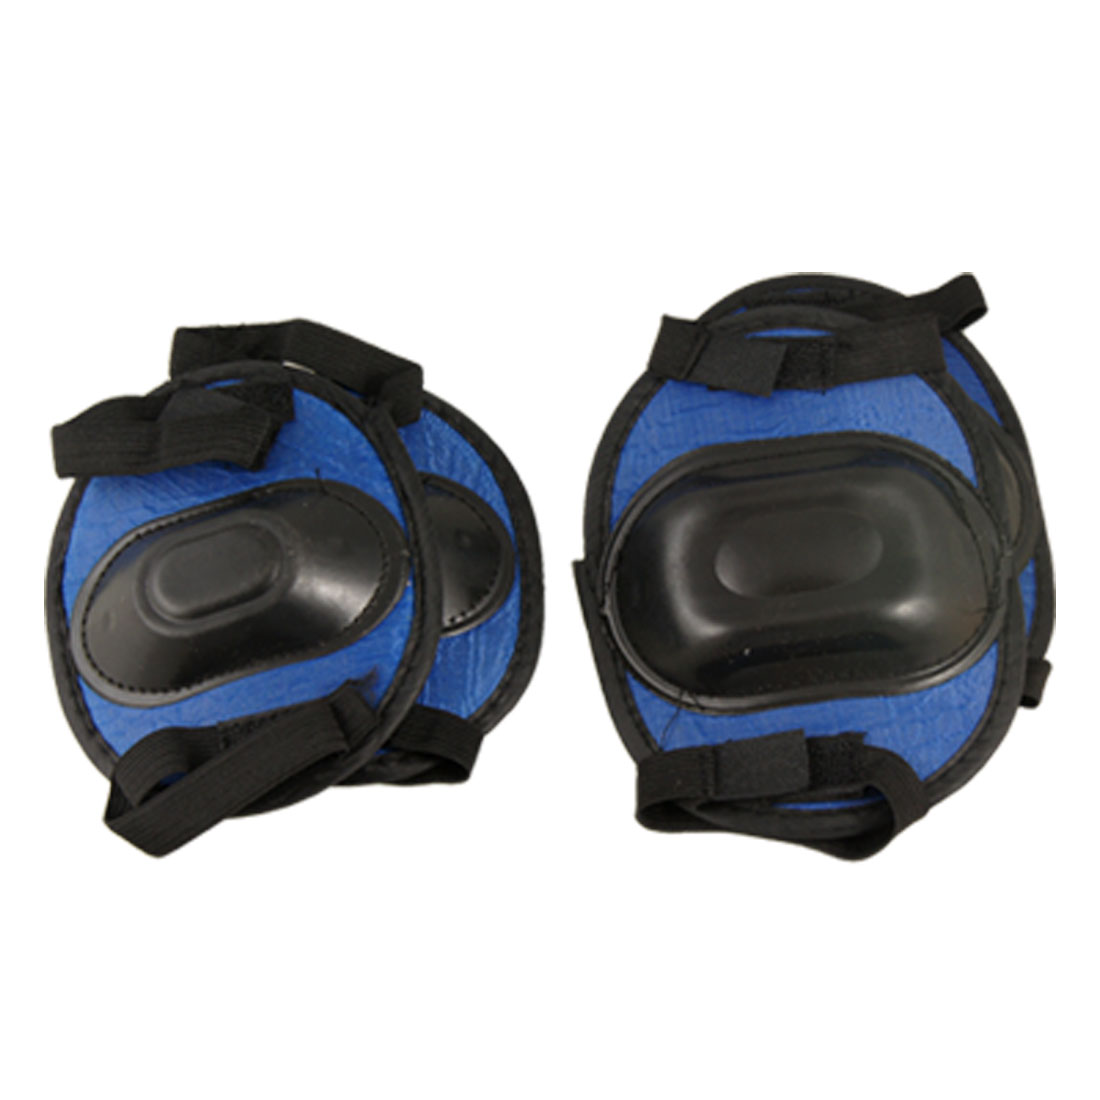 Click here to buy Skateboard Safety Protective Gear Set Palm Wrist Guard Elbow Knee Pads for Kids by Unique-Bargains.